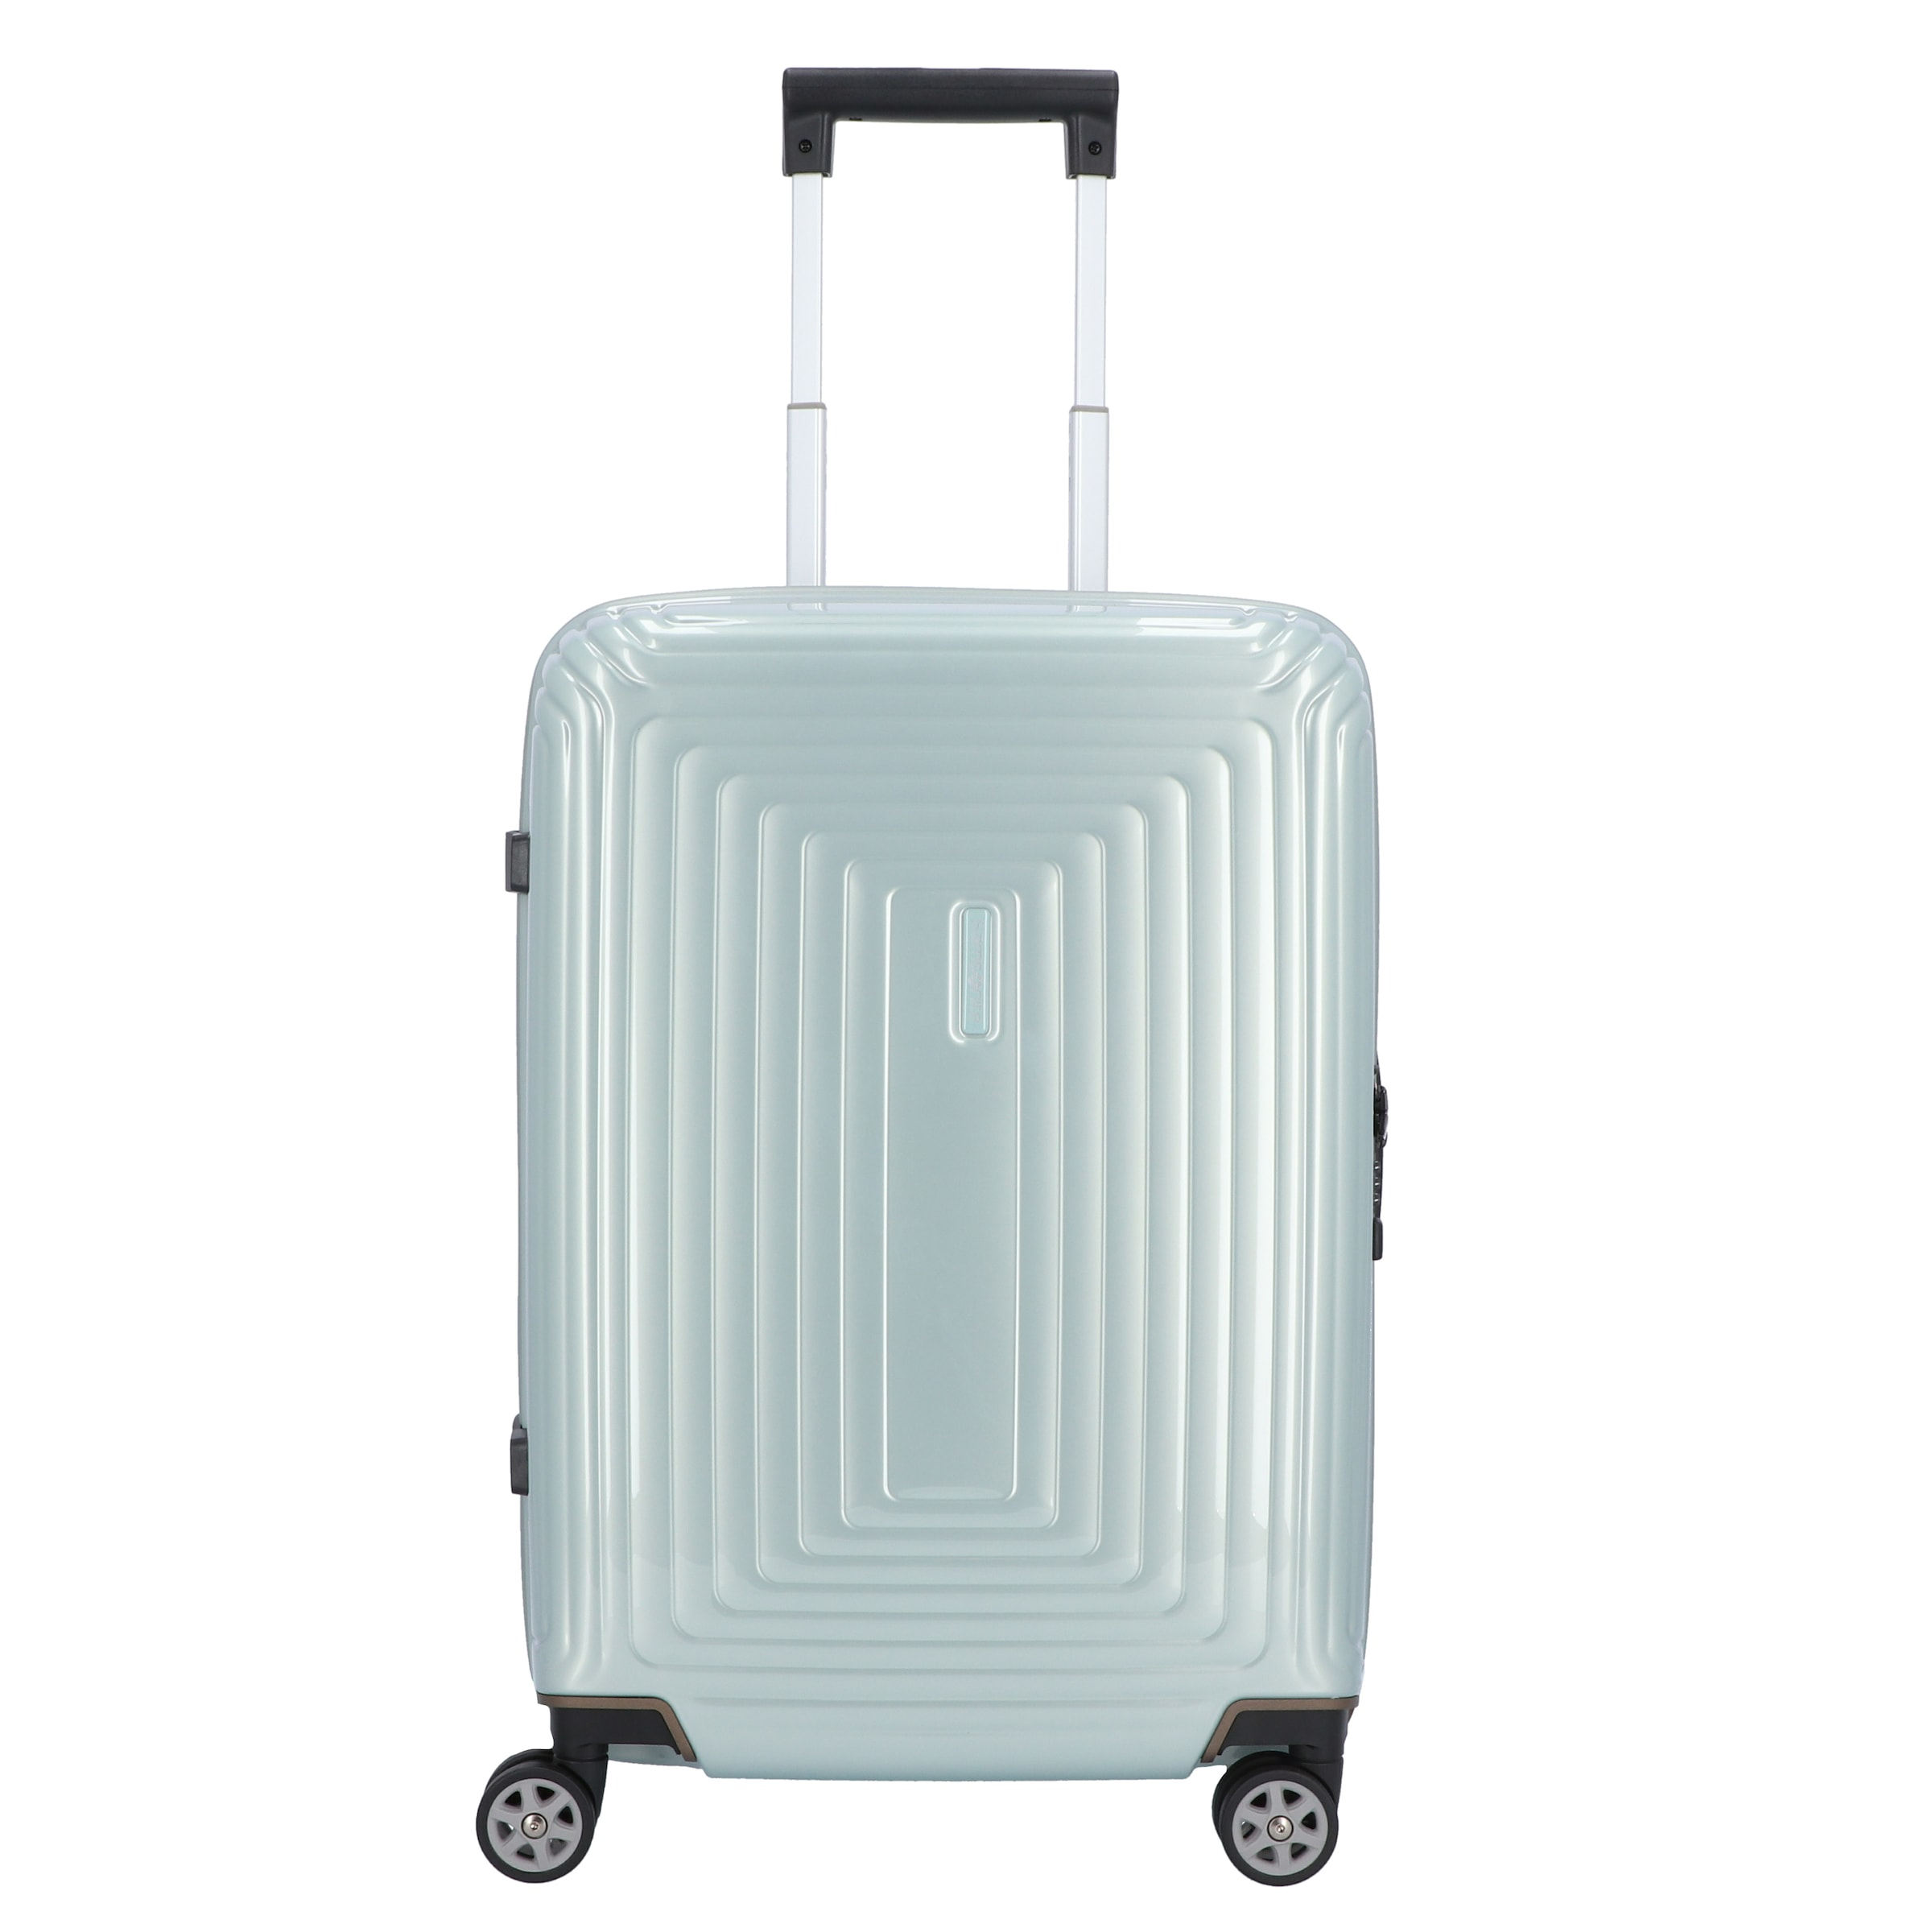 Samsonite 4 rollen Kabinentrolley In Spinner Neopulse RotSchwarz mN80wnyvO